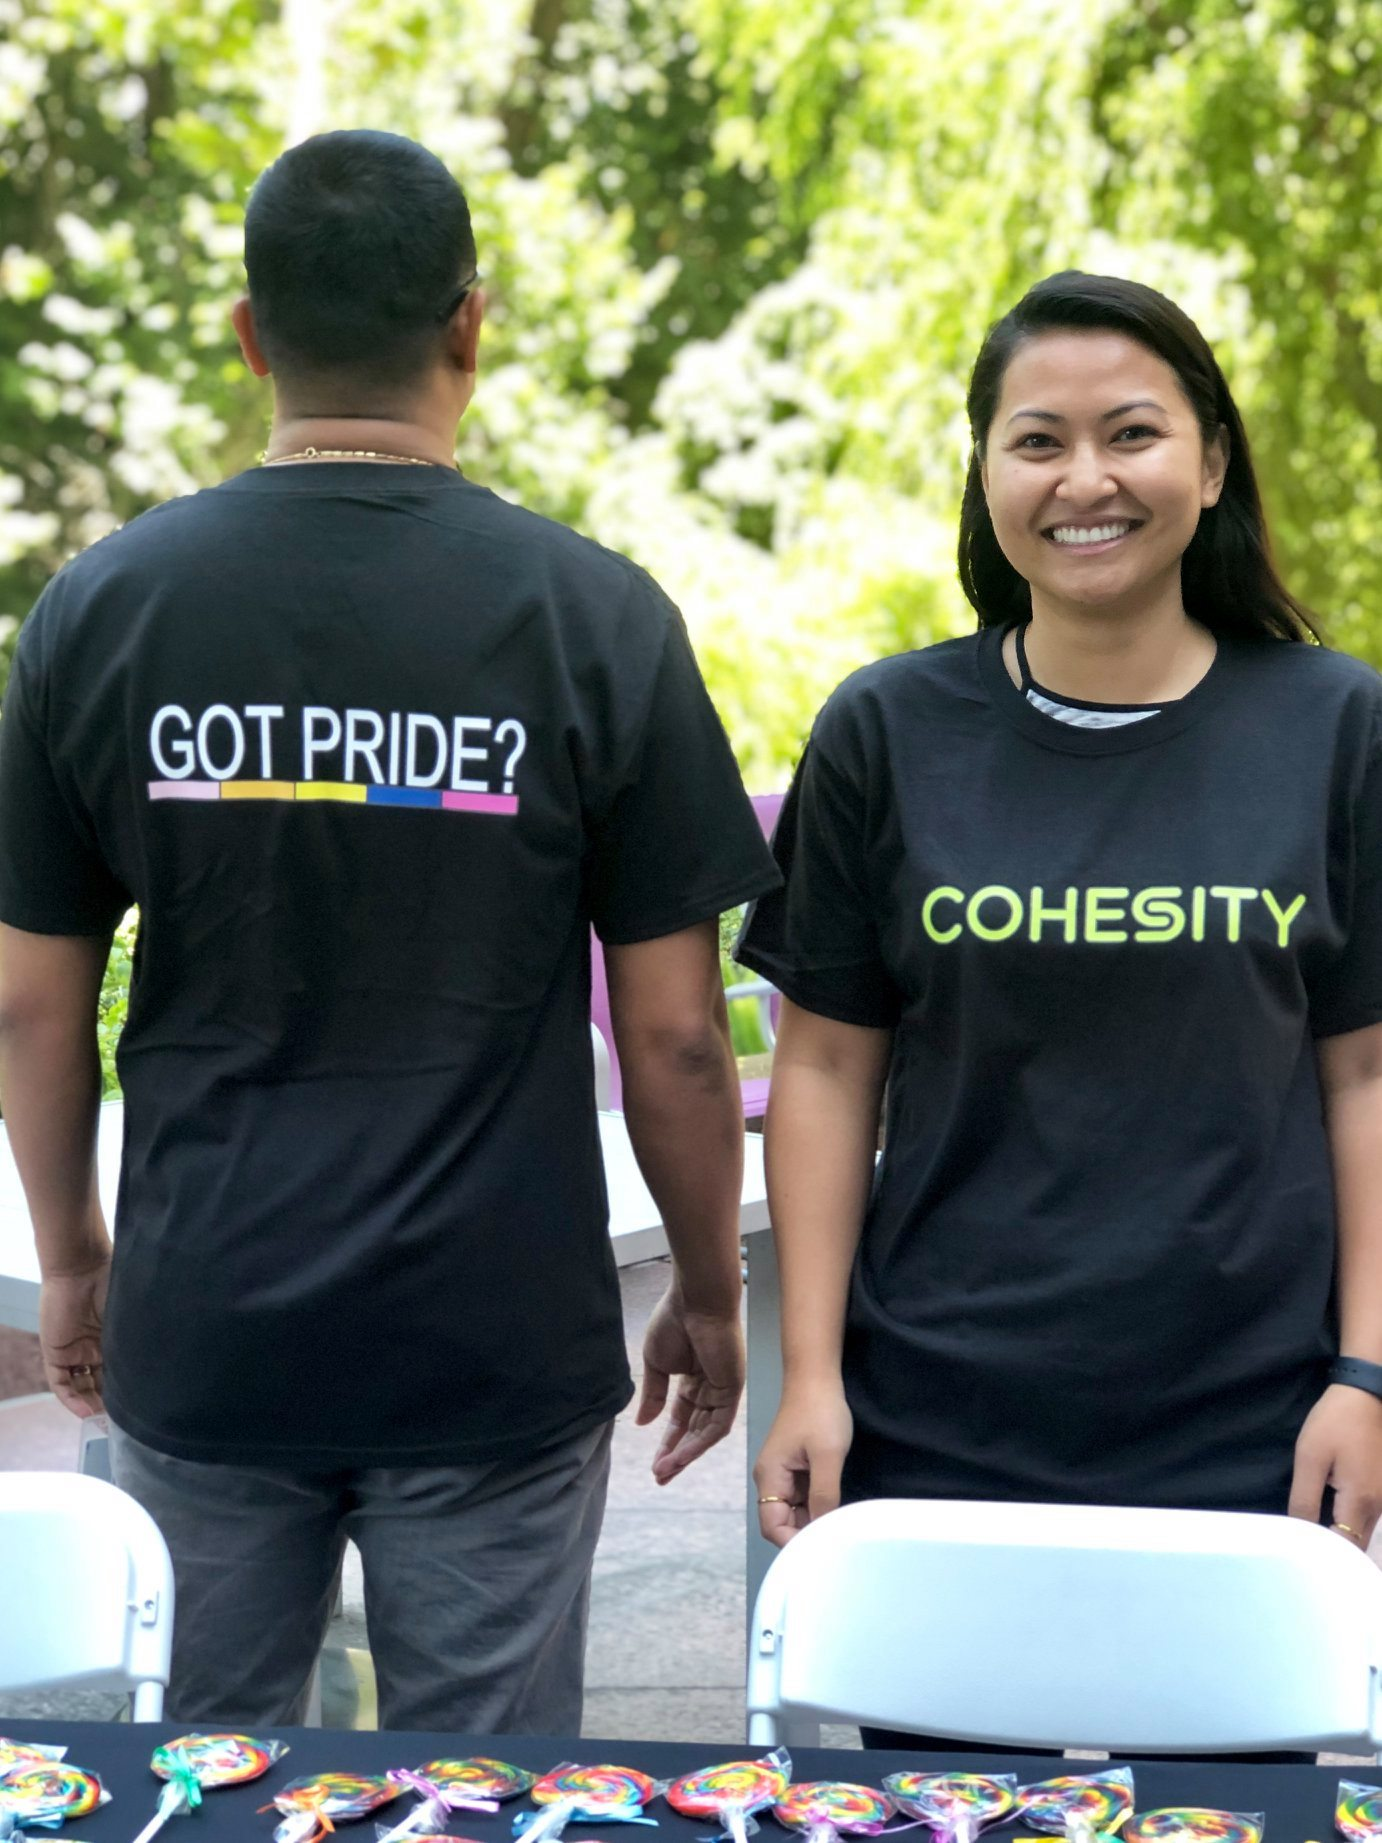 Cohesity Pride Event